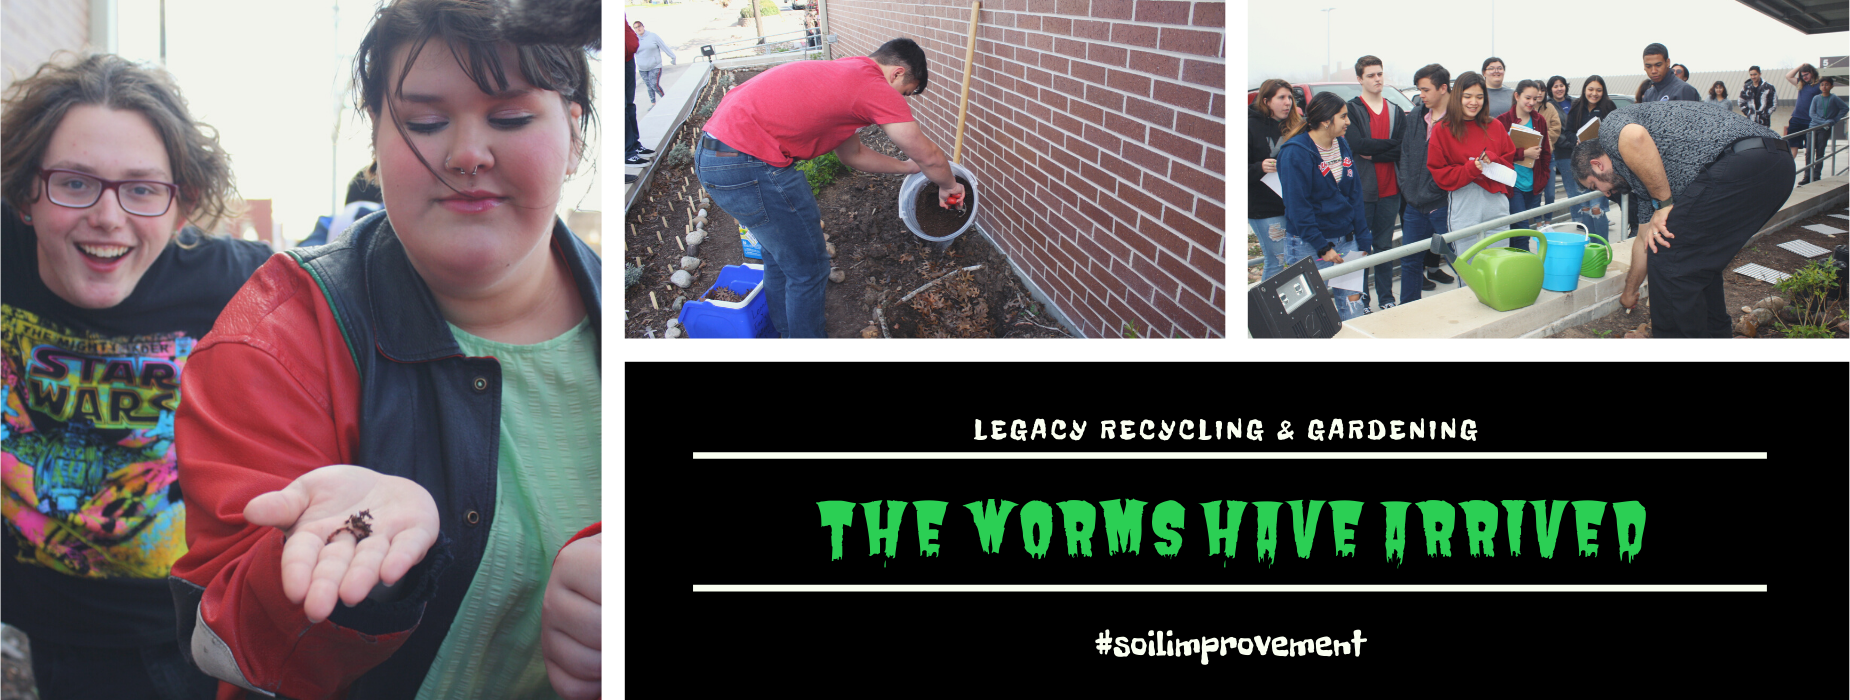 Worms added to Legacy garden to improve soil